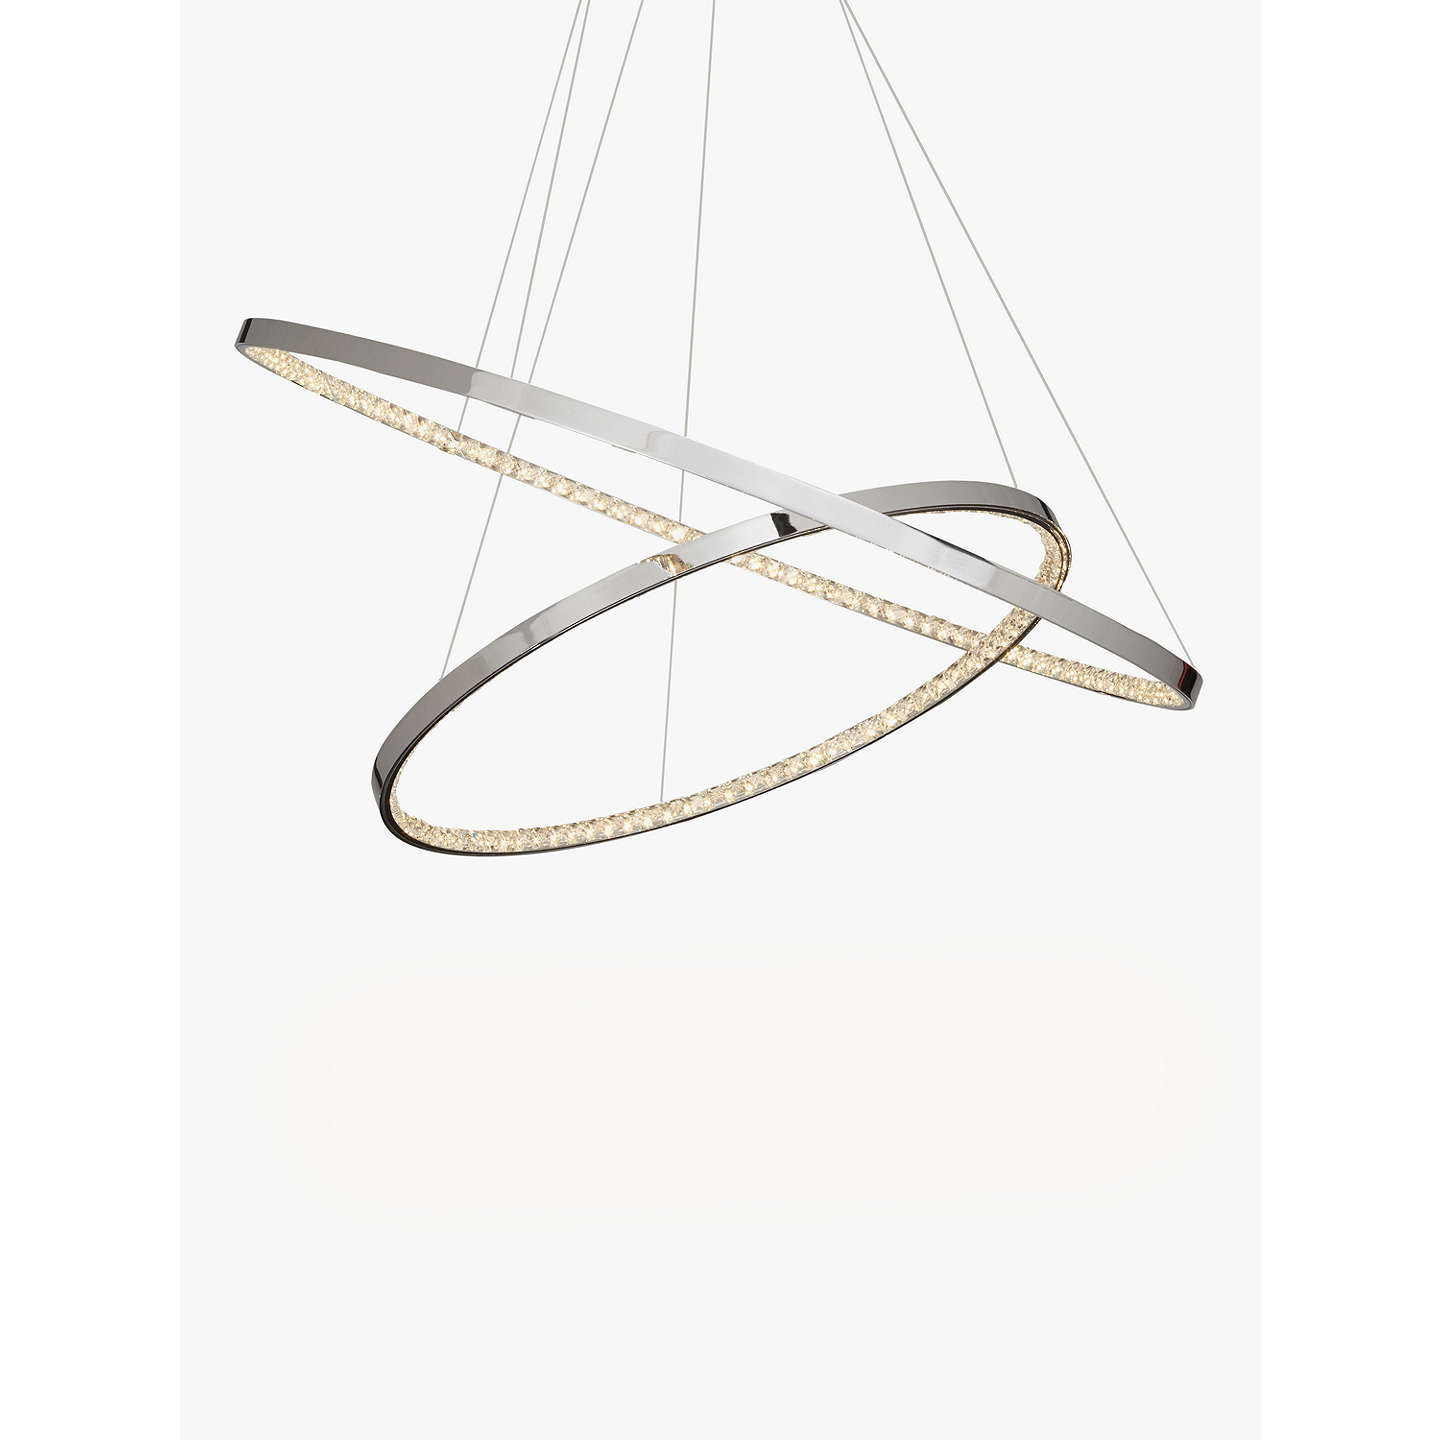 John lewis zephyr led dual ring pendant ceiling light chrome at buyjohn lewis zephyr led dual ring pendant ceiling light chrome online at johnlewis mozeypictures